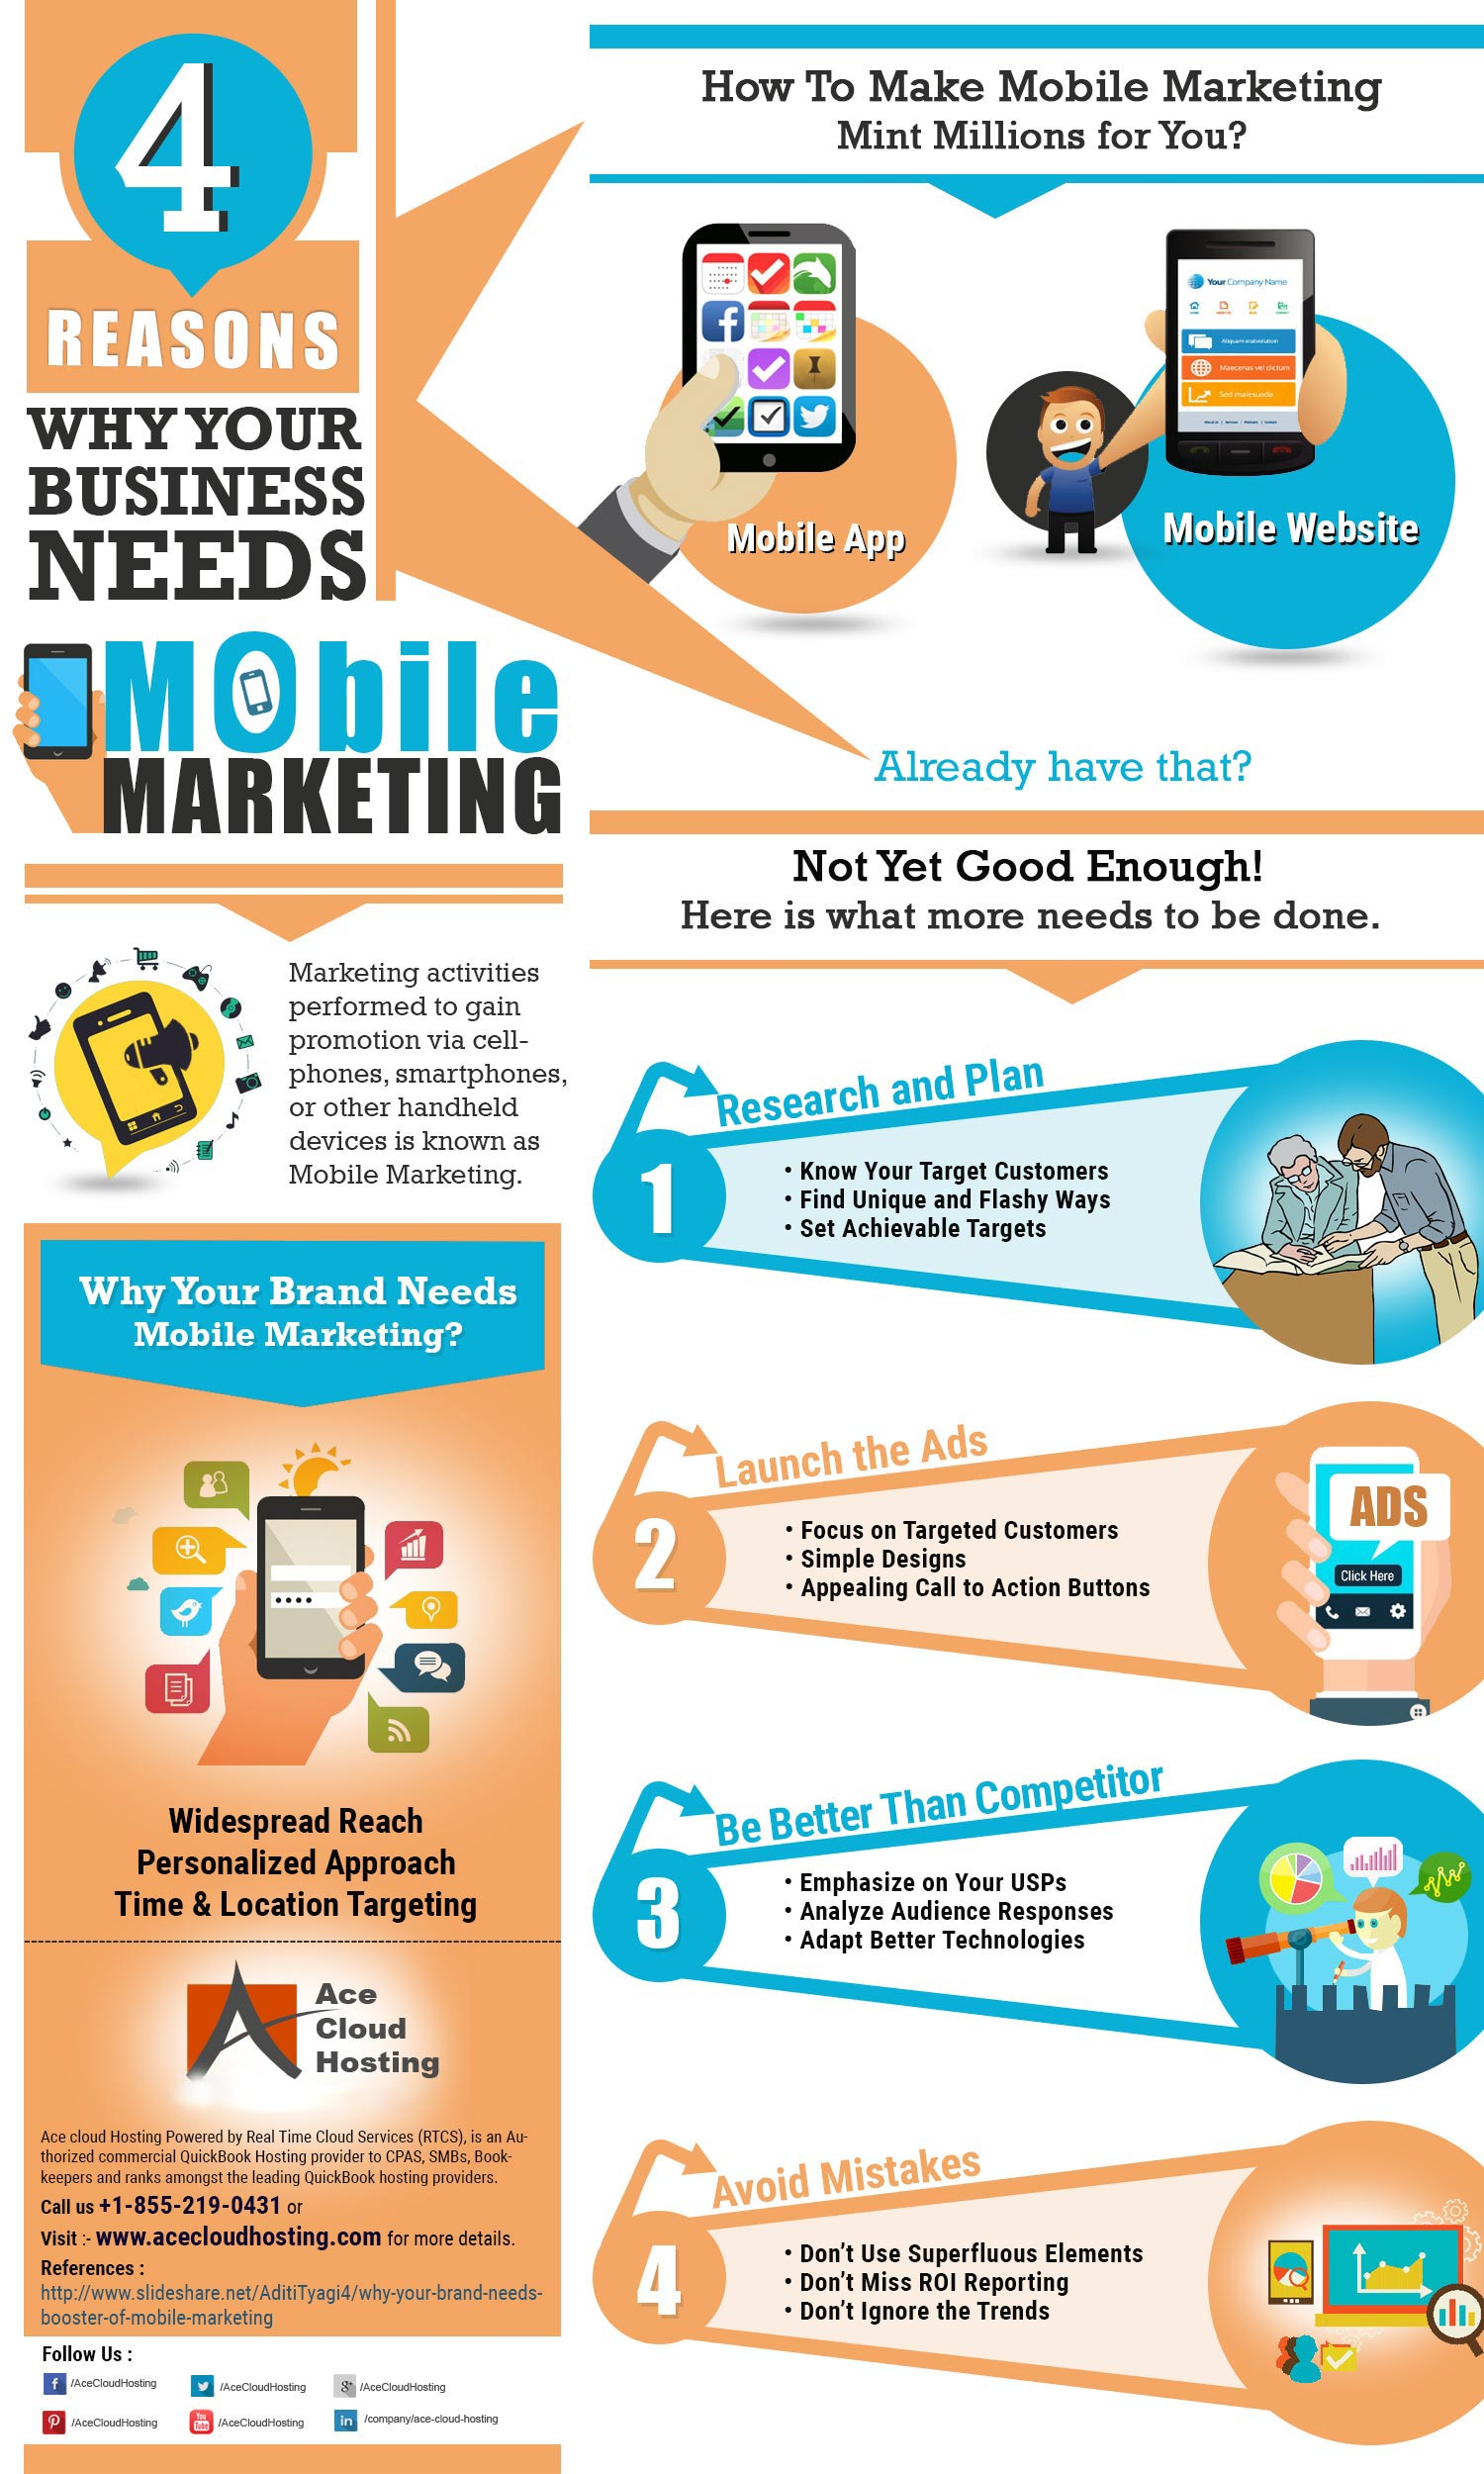 4 Reasons Why Your Business Needs Mobile Marketing Infographic